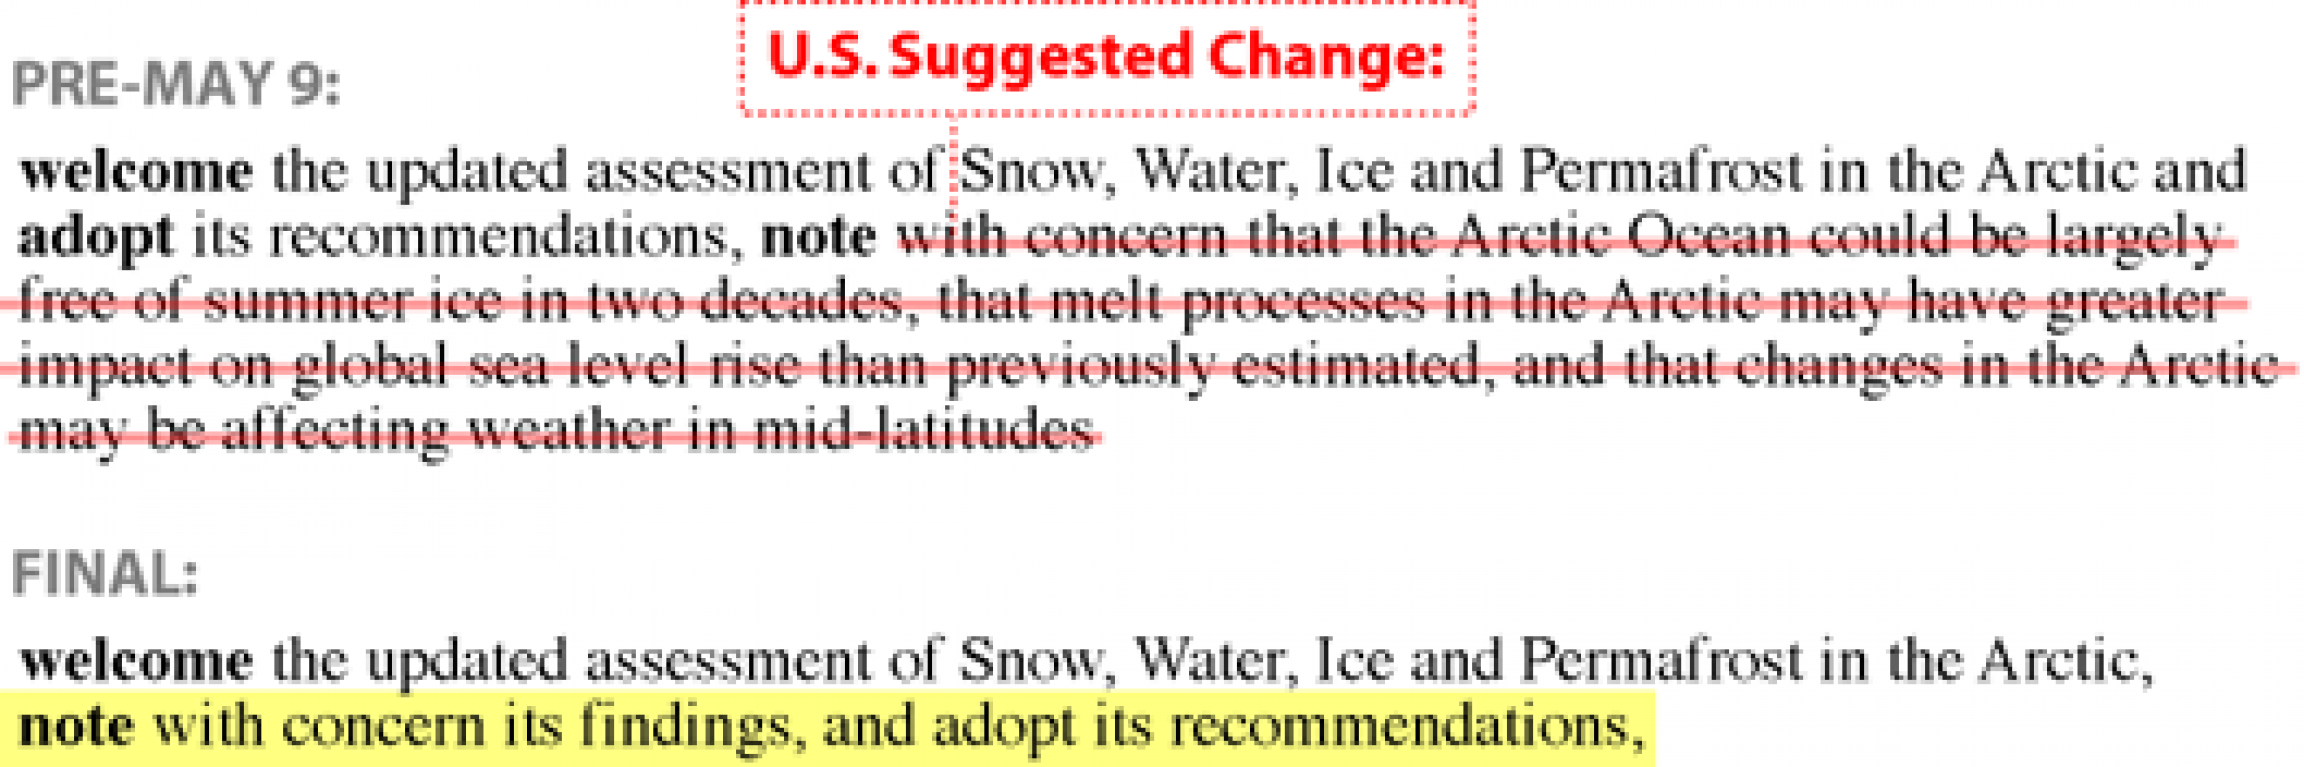 Text of the Arctic Council changes